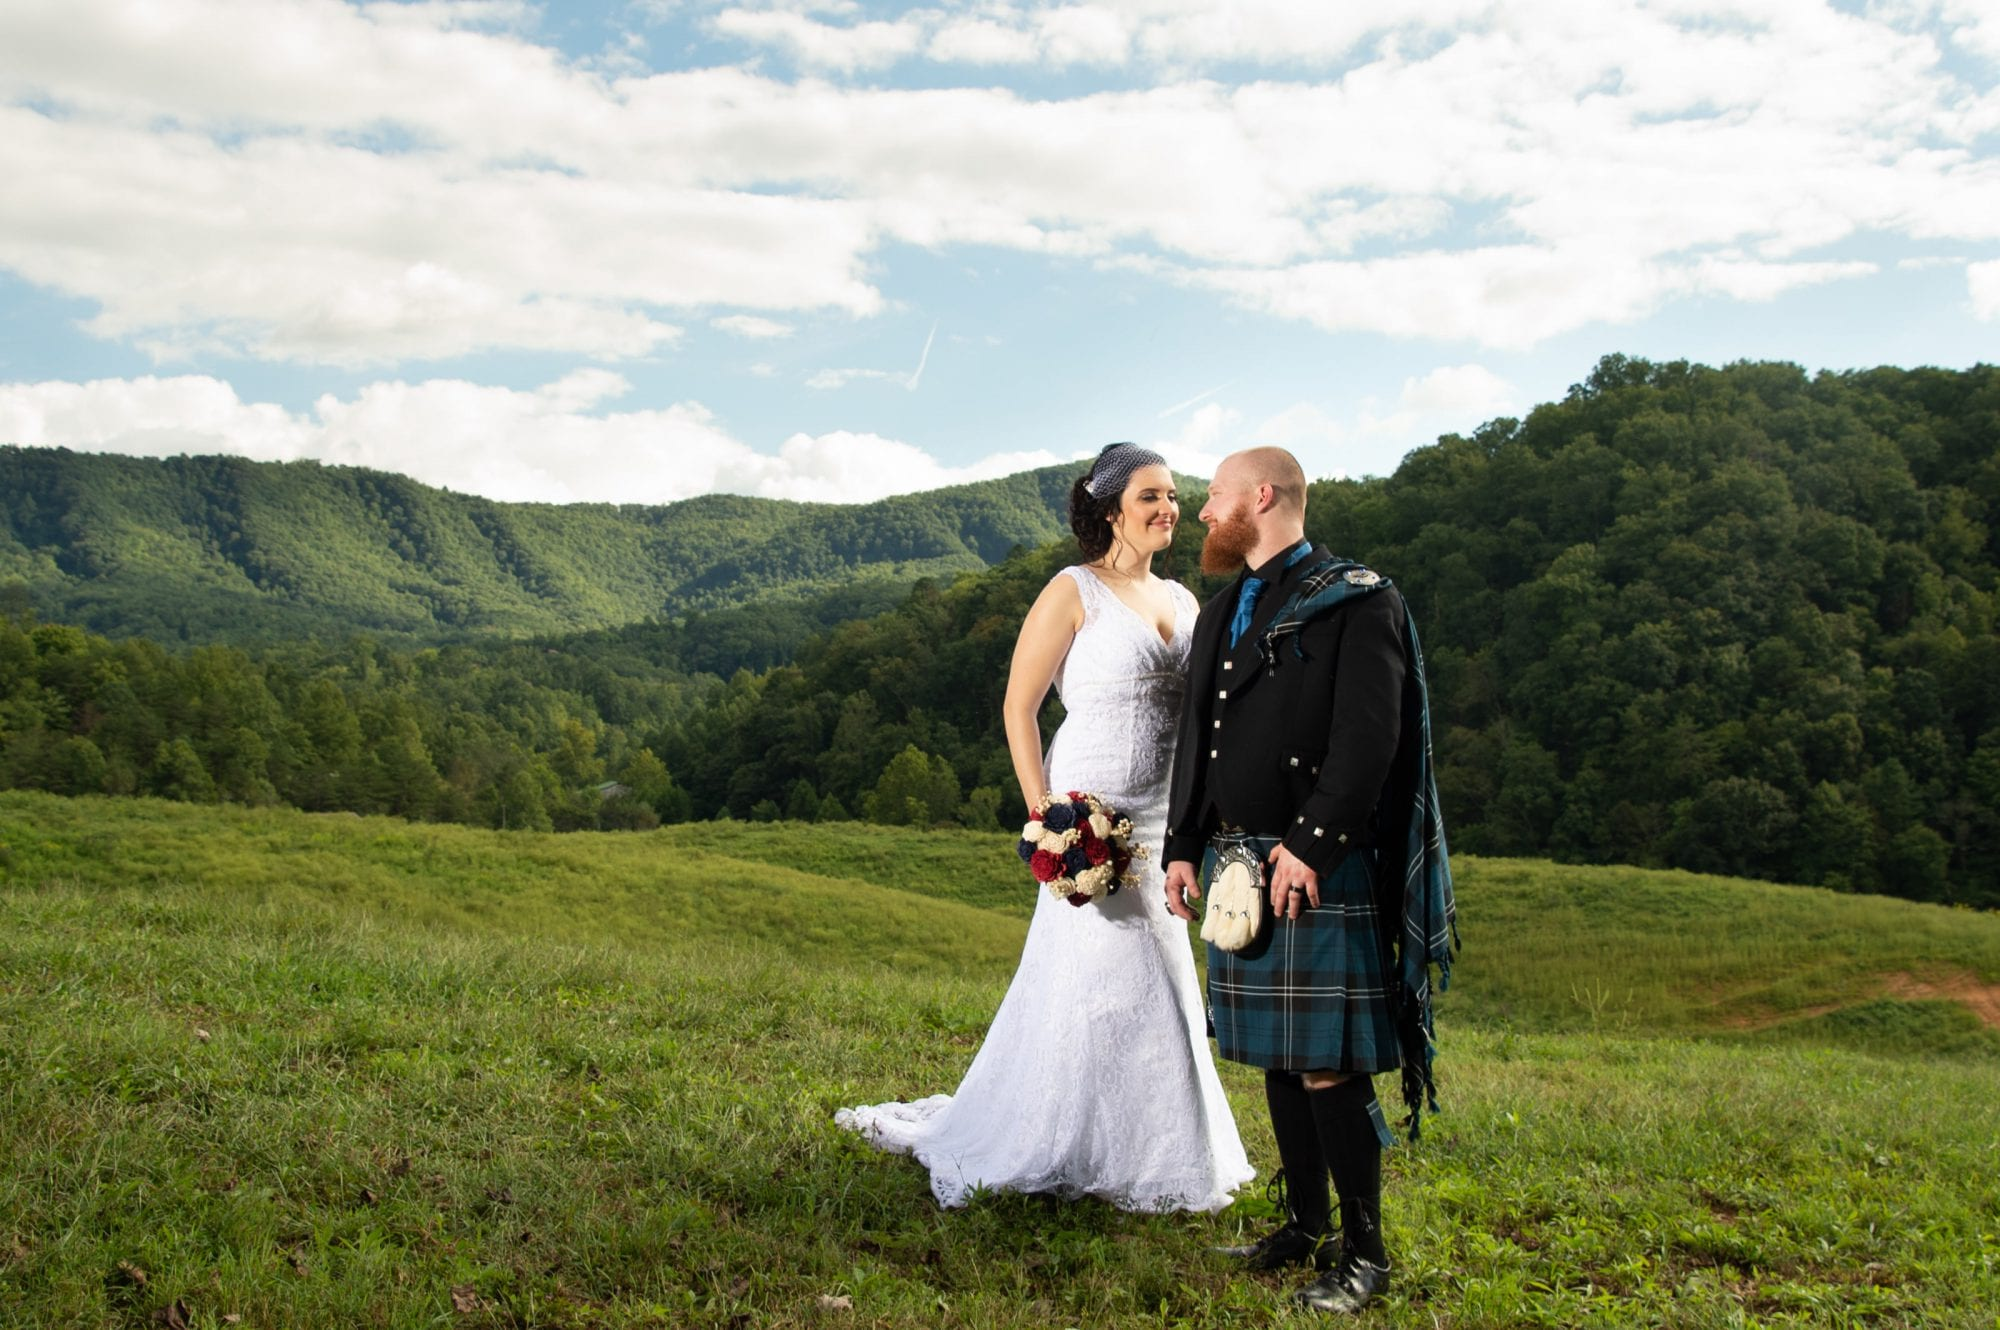 Pet family wedding Pigeon Forge